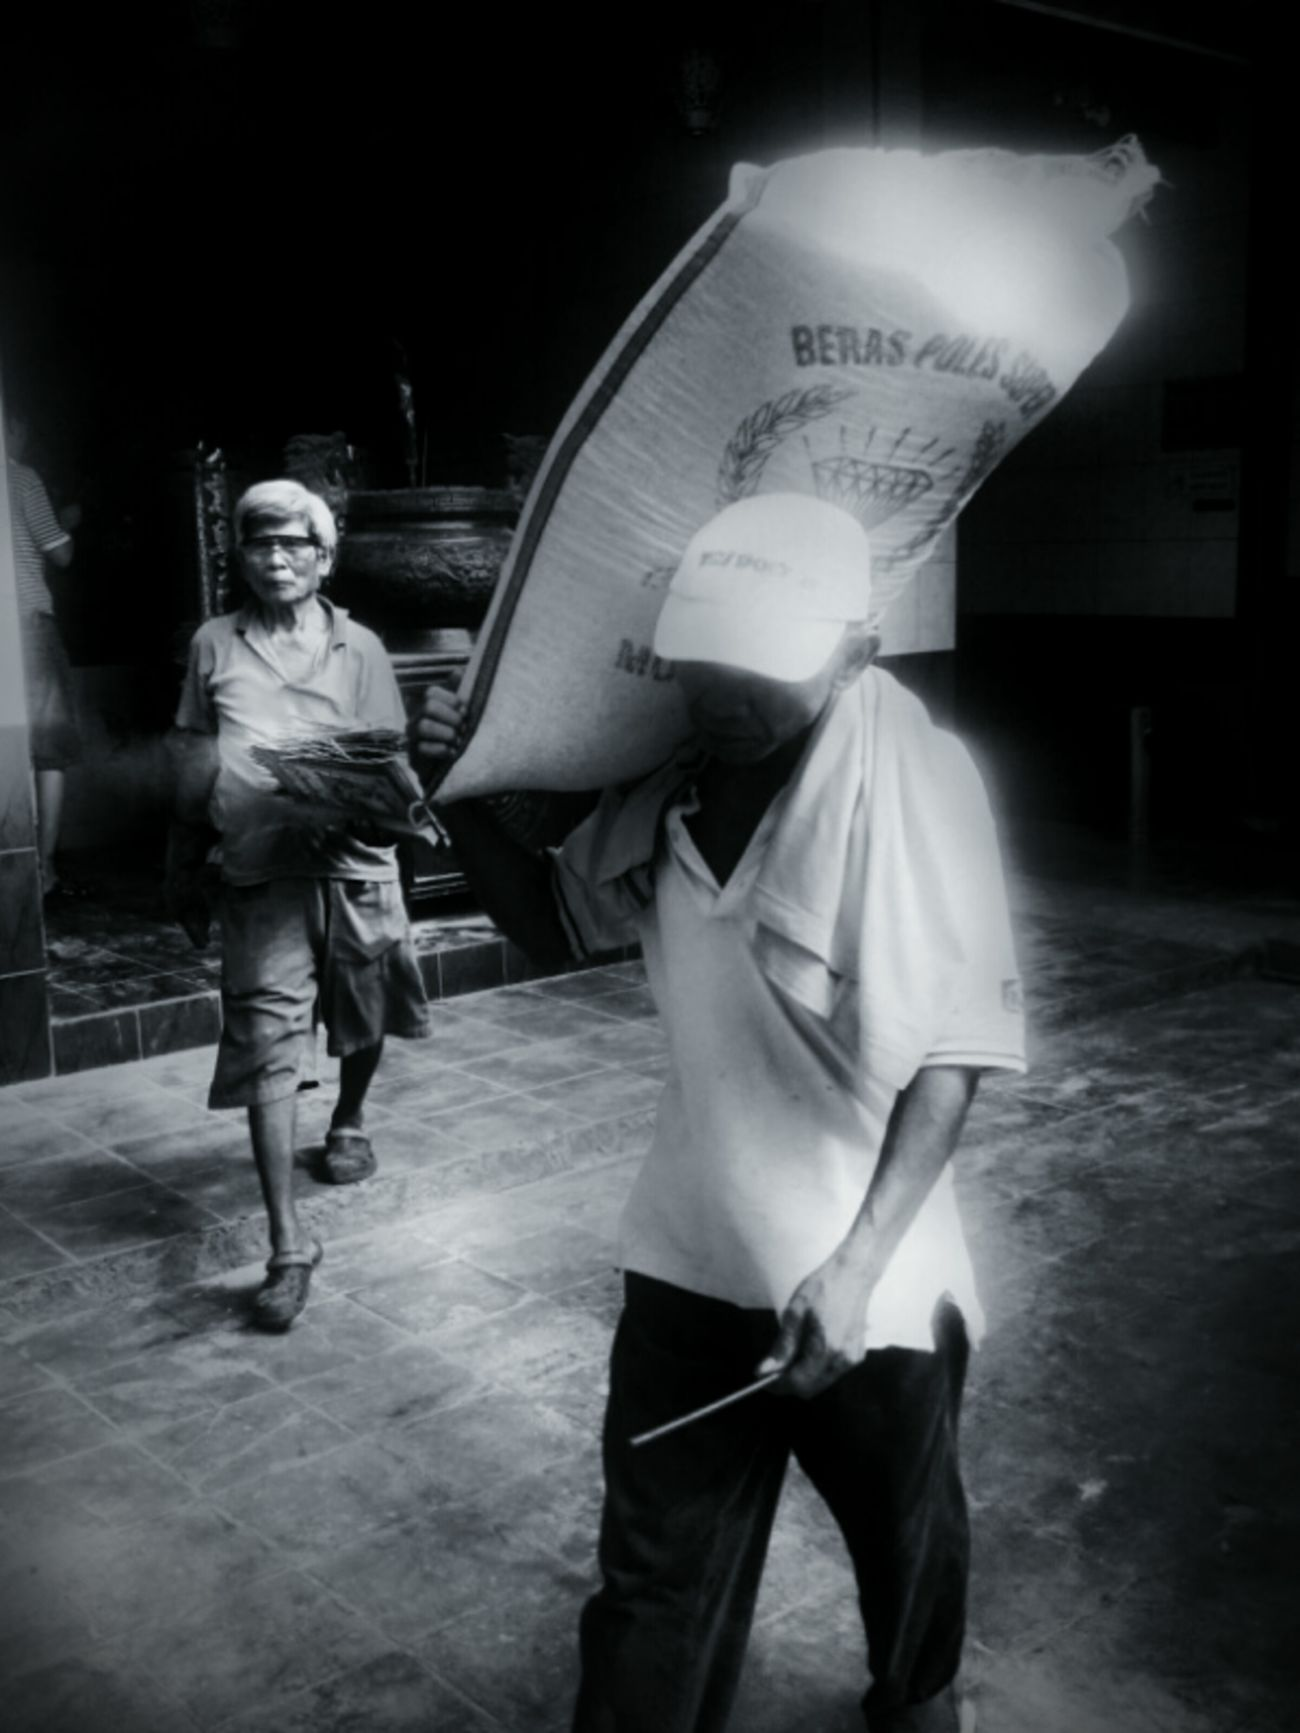 Black And White Street Photography ID-andrography Android Photography